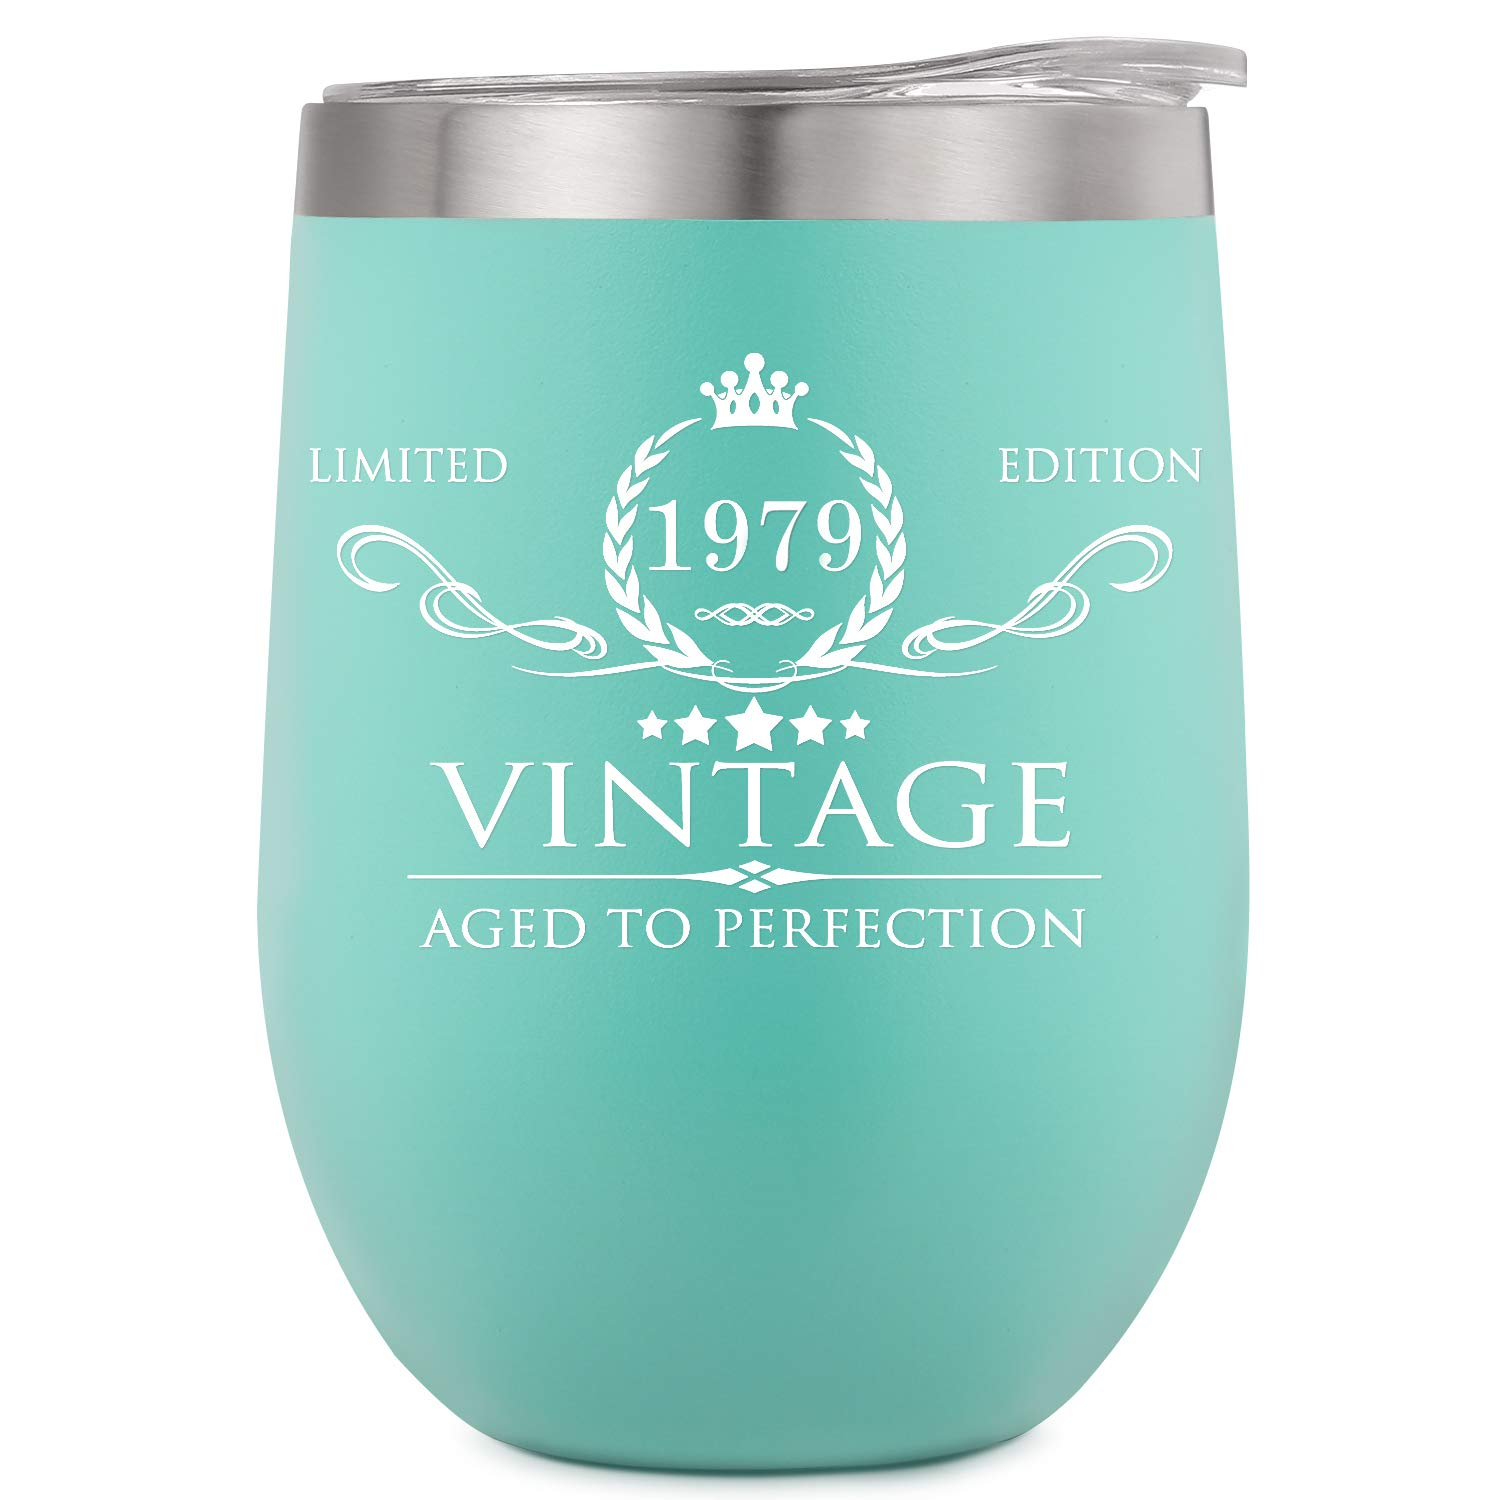 Mom 1979 40th Birthday Gifts for Women and Men Insulated Wine Tumbler Funny 40th Anniversary Gifts Idea Husband Wife Decorations for Her//Him 12oz Mint Double Wall Vacuum Cup with Lid Dad